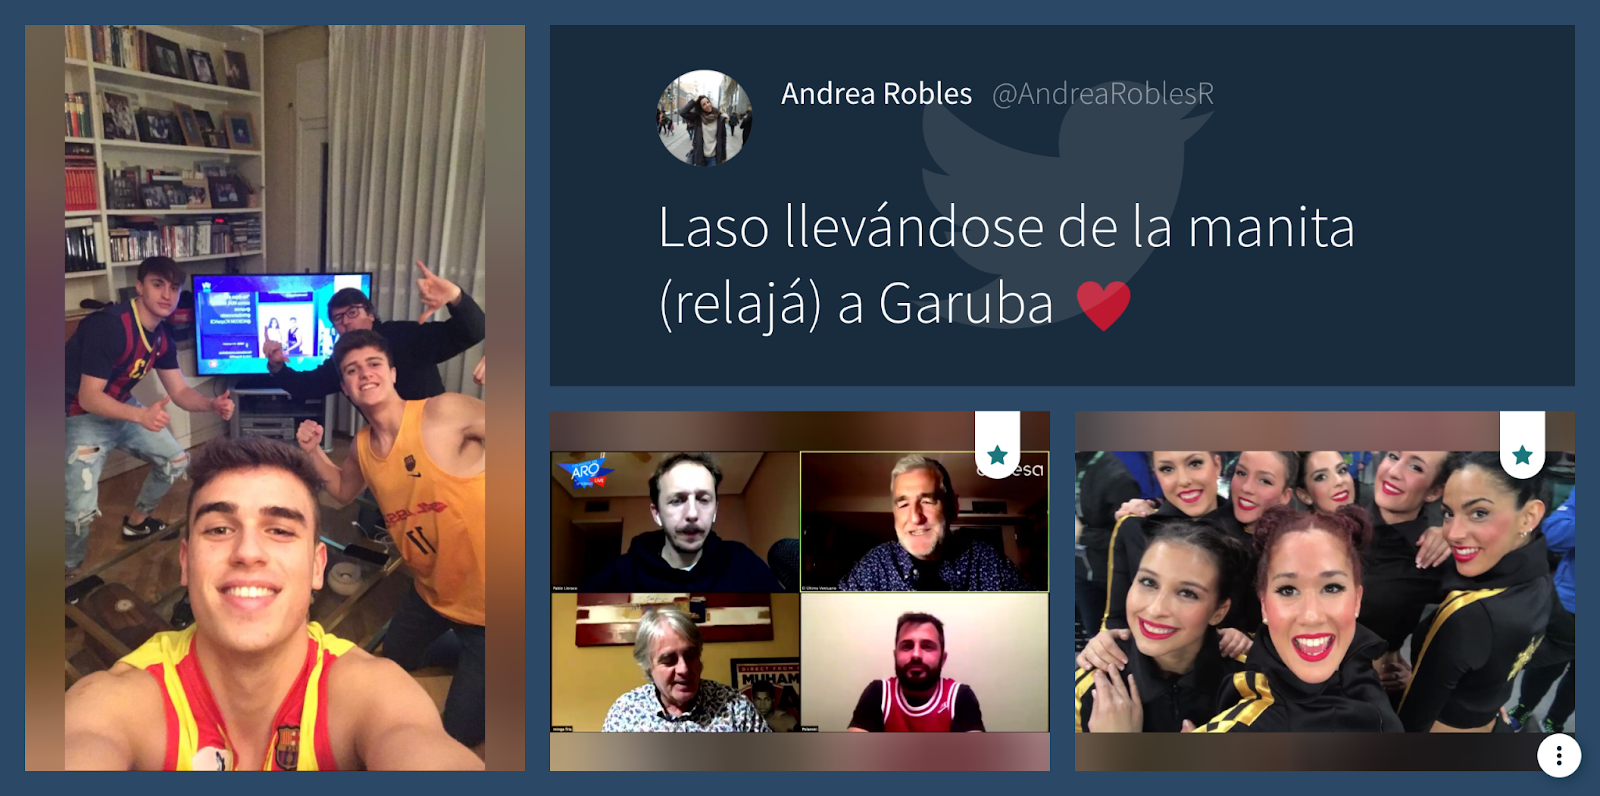 Screenshot of Copa del Rey's live social media wall. In the image appears a group of fans in front of a TV broadcasting the games, supportive messages and a group of cheerleaders.